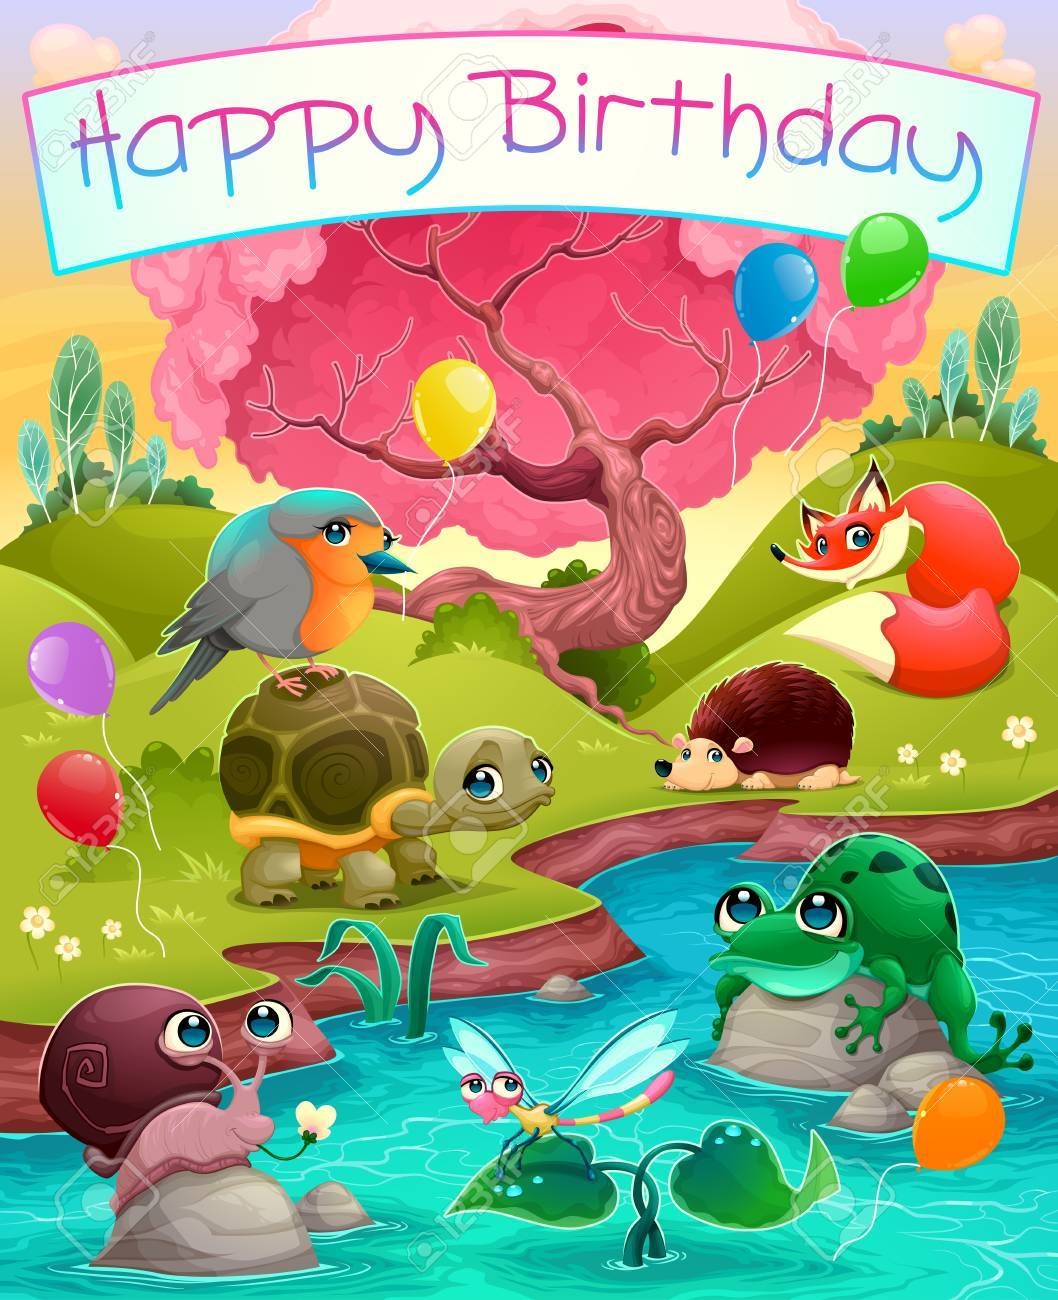 Happy birthday card with cute animals in the countryside vector happy birthday card with cute animals in the countryside vector cartoon illustration stock vector bookmarktalkfo Images